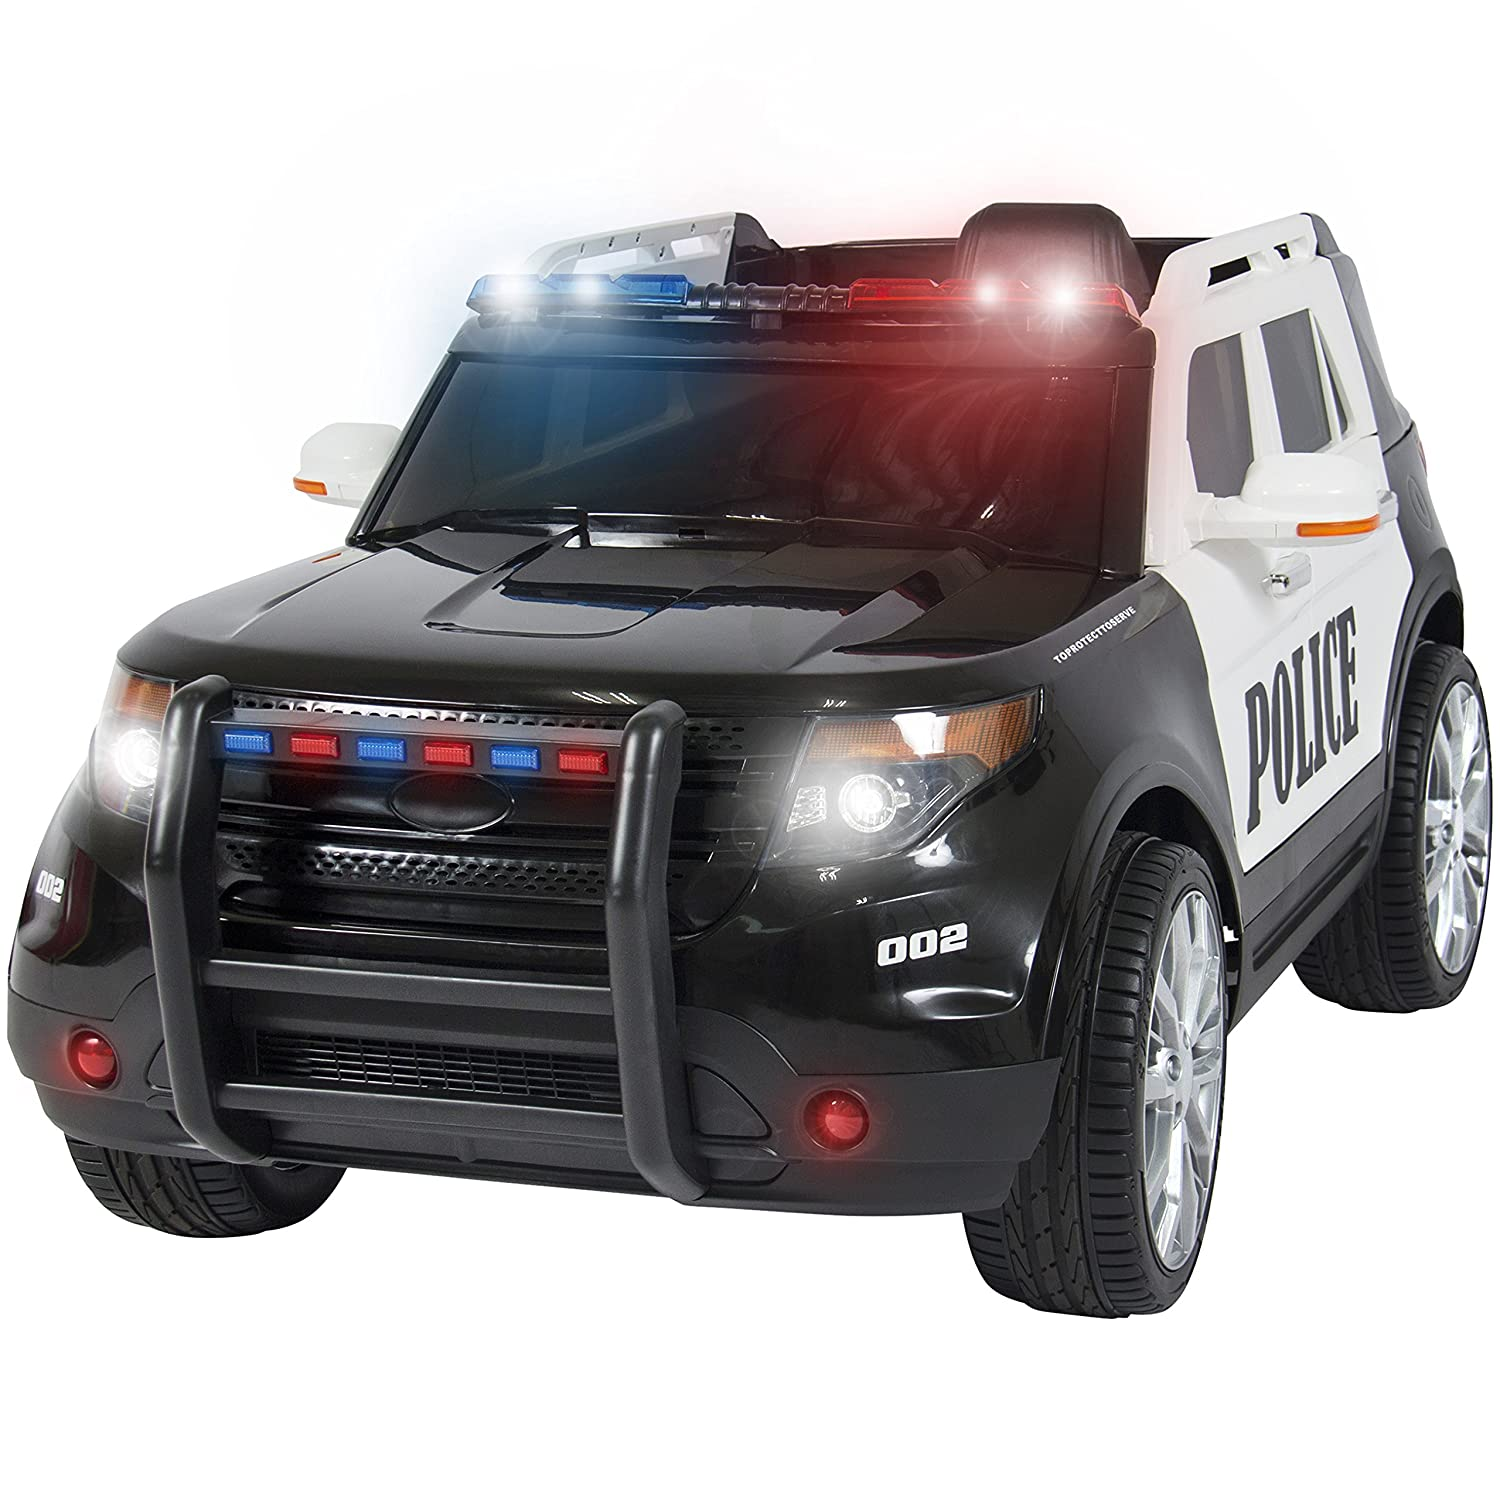 amazoncom best choice products ford style 12v ride on car police car w remote control 2 speeds led lights toys games